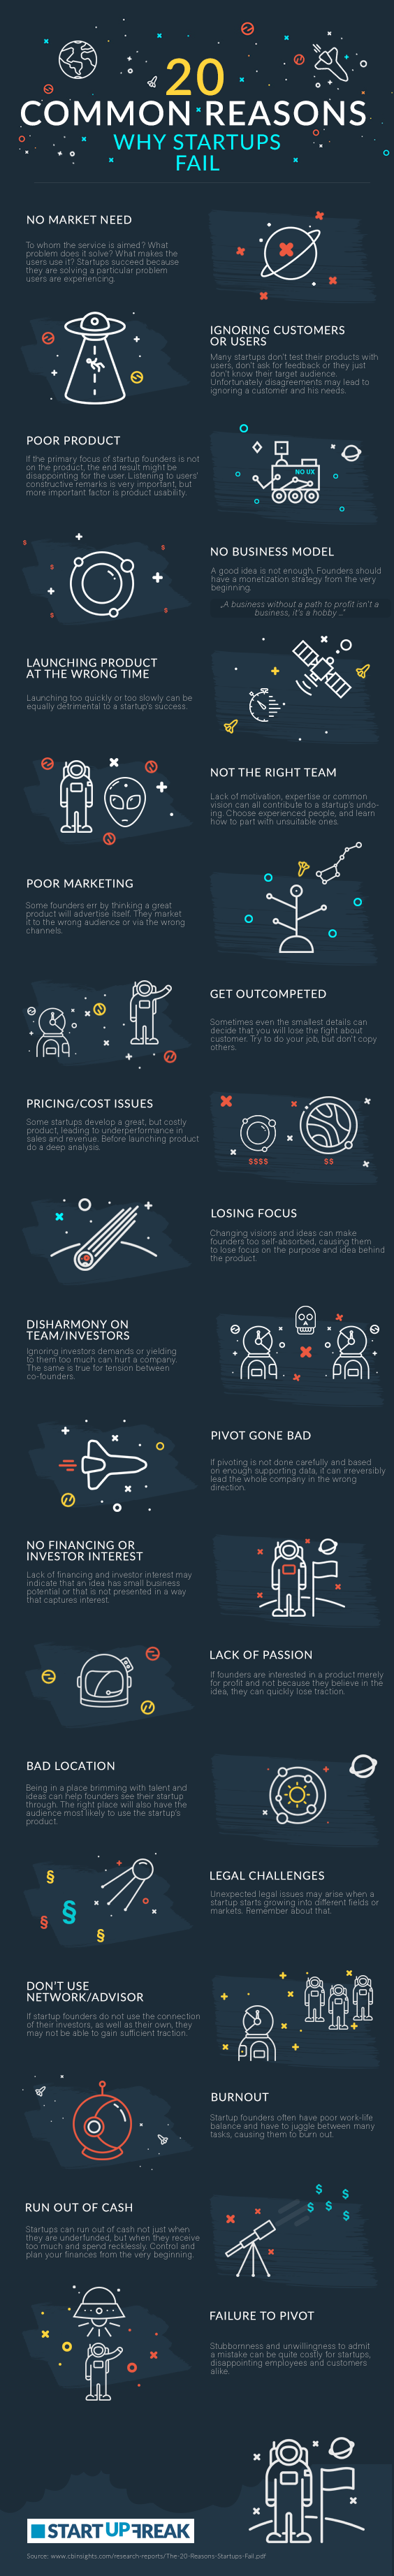 20 Common Reasons Why Startups Fail #Infographic